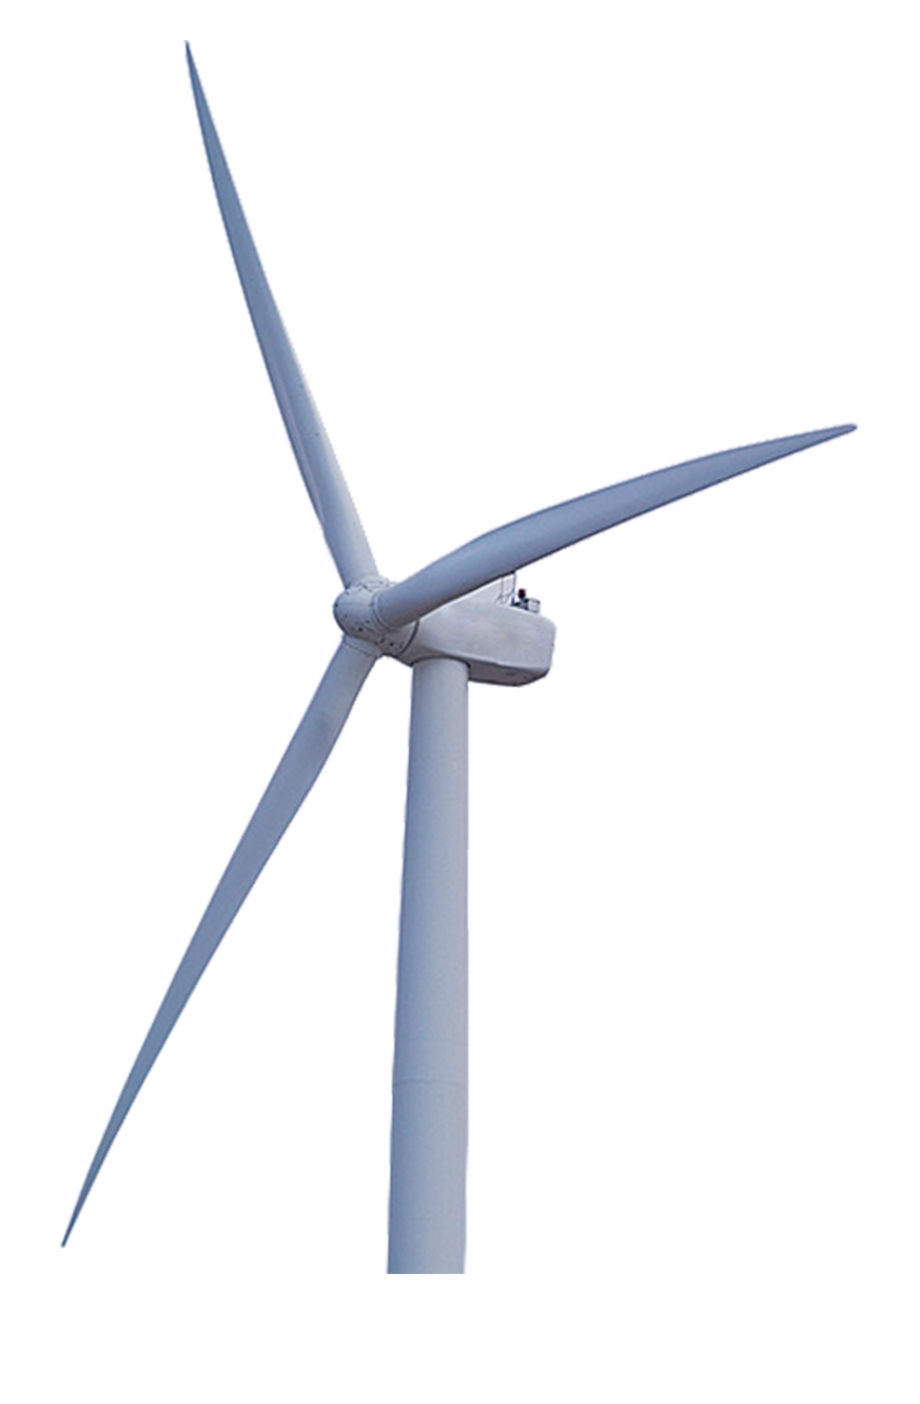 Windmill Png Free PNG Images & Clipart Download #1307427.